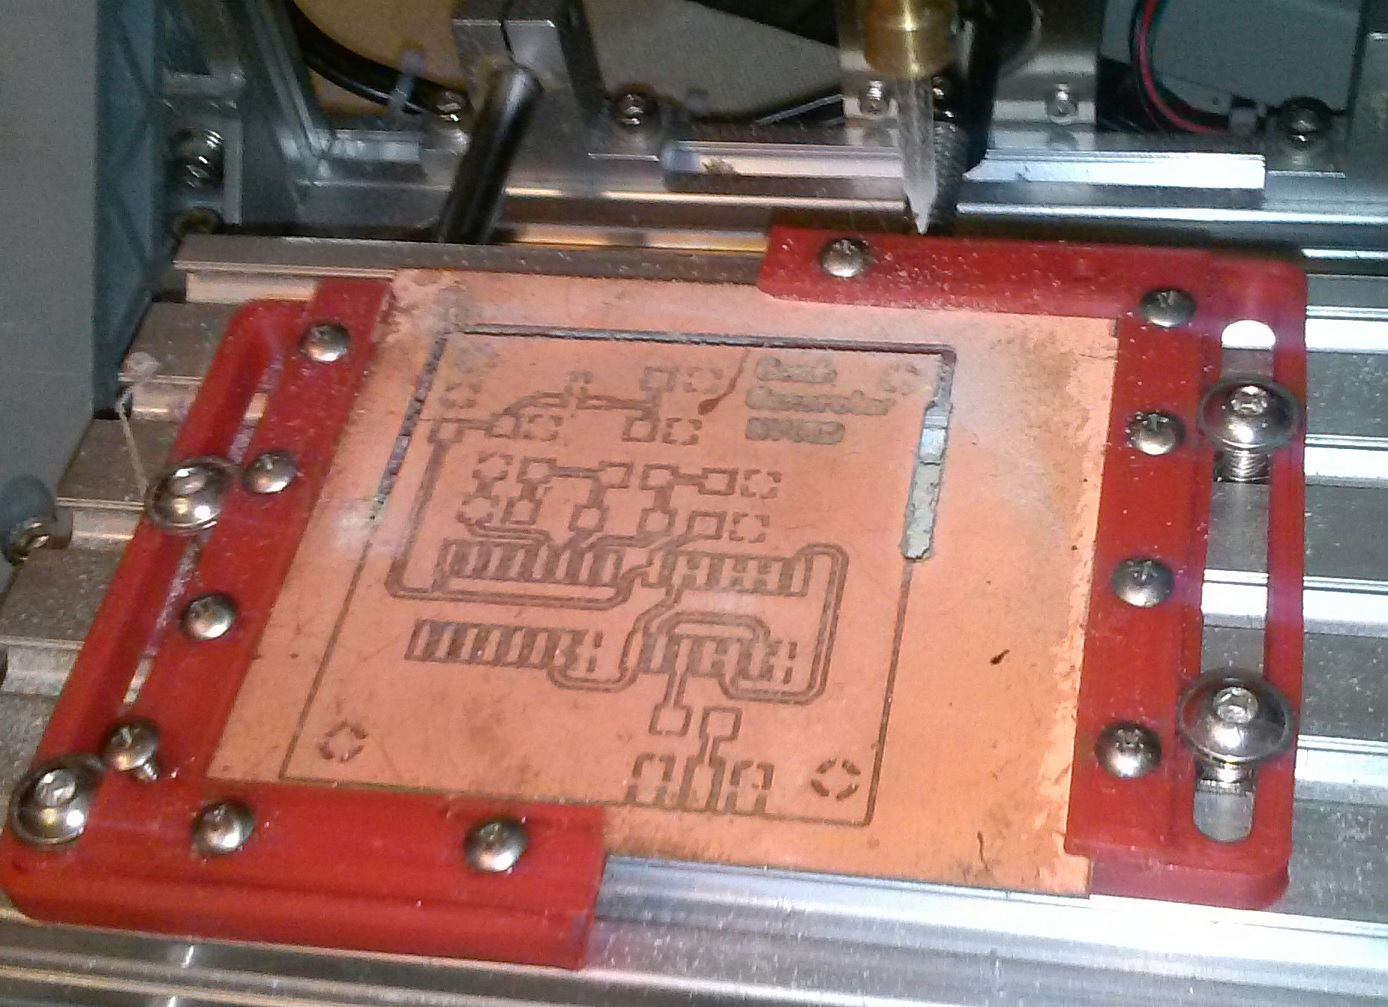 Duwaynes Place Cnc Engraver Update 12 6 17 High Quality Circuit Board Scrap Buy Scrappcb It Is Small Enough And Sits Right Next To My Computer Desk Now I Can Design Layout Mill A With Out Having Even Get Up From The